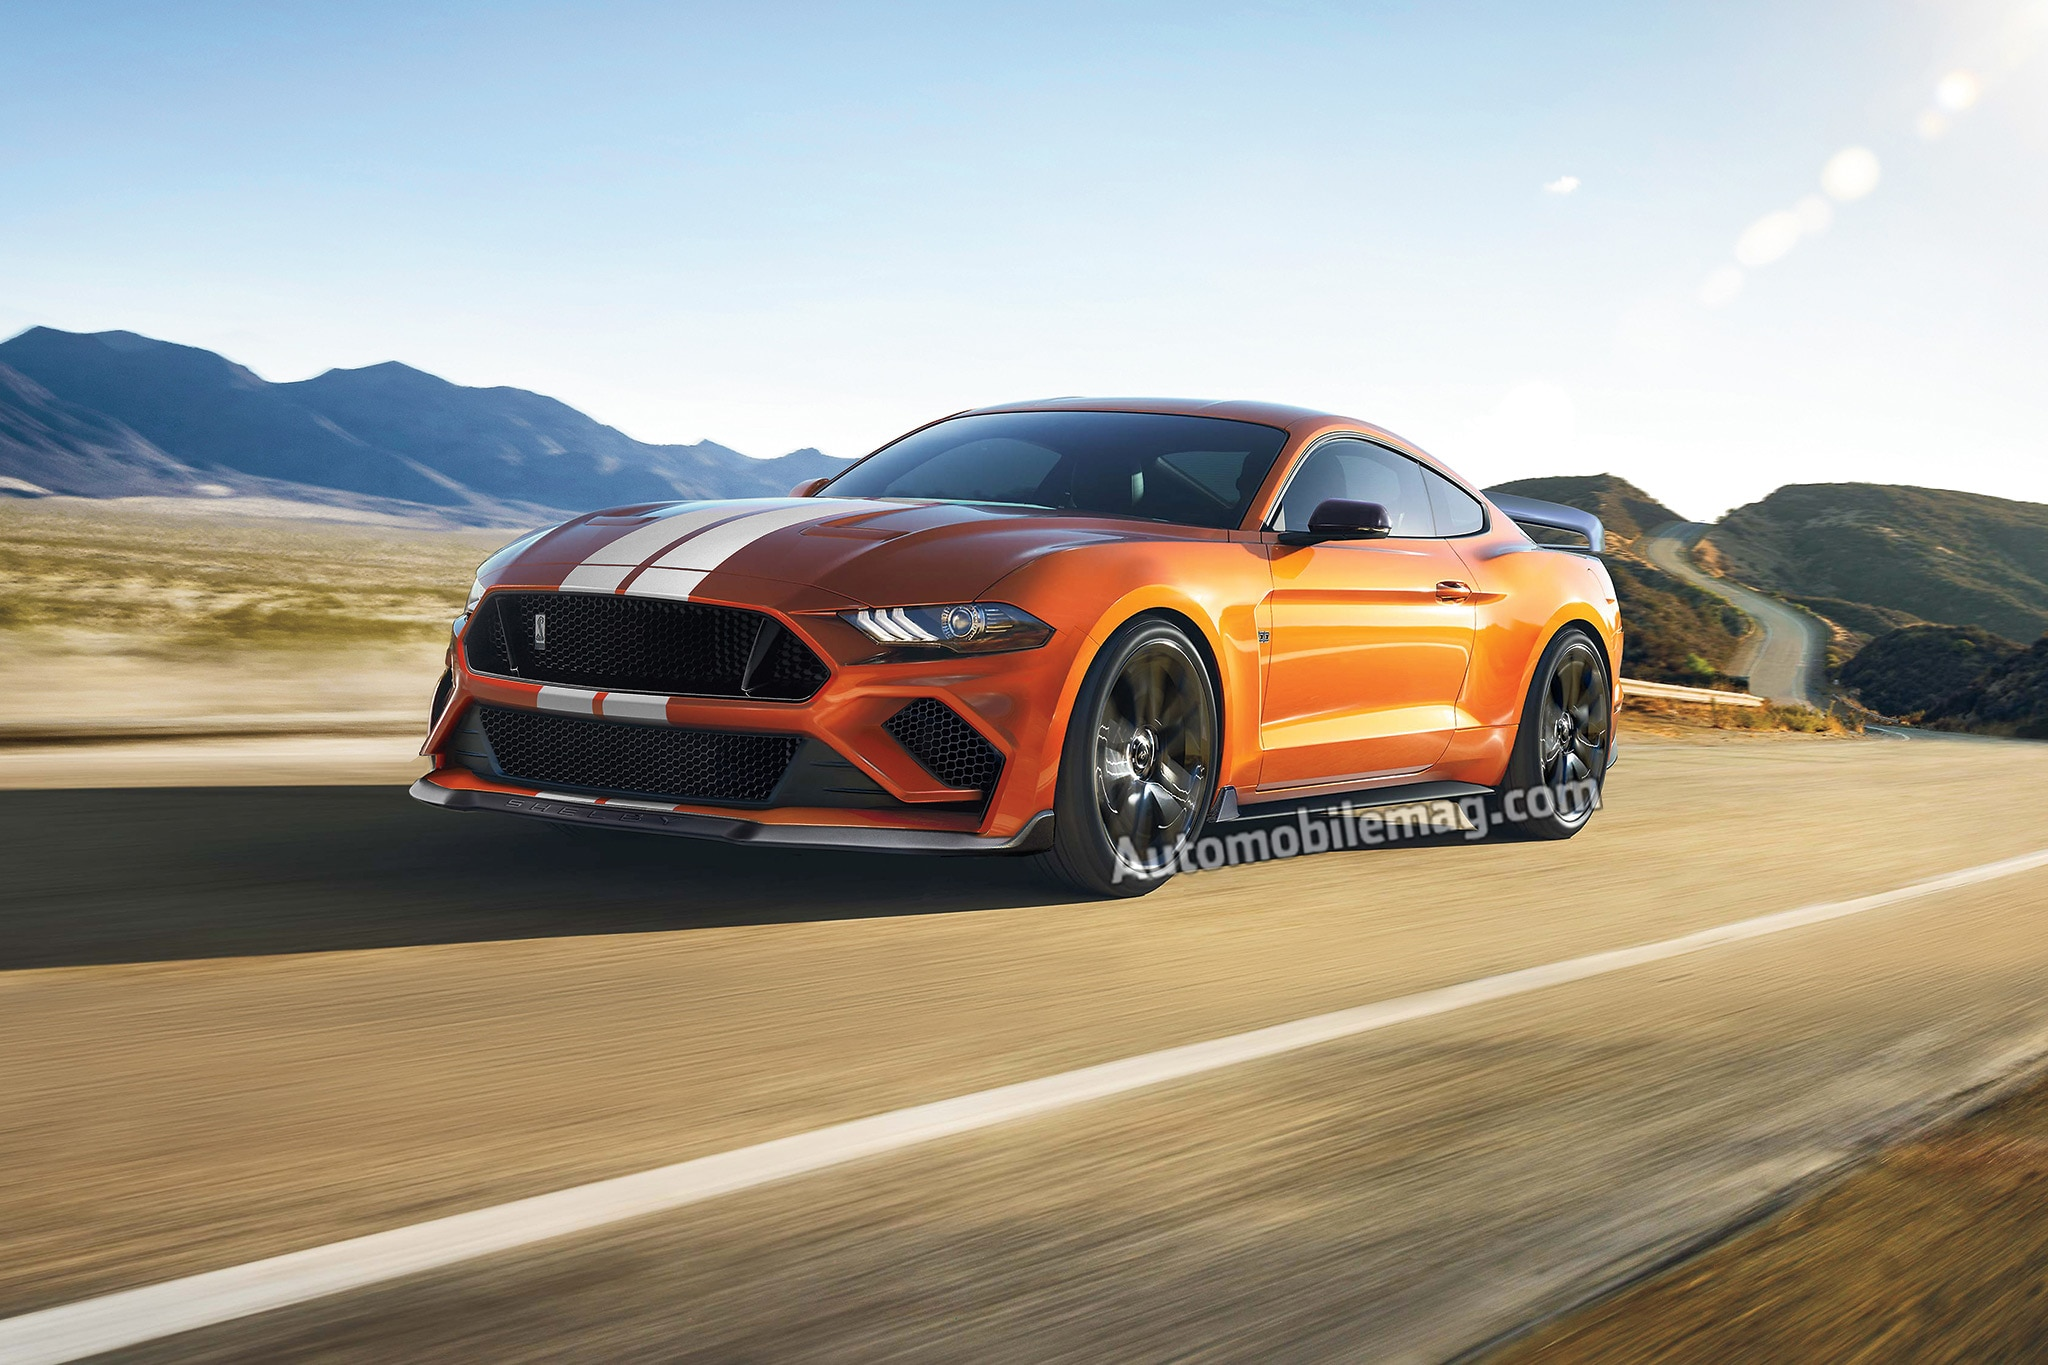 ... Seconds And A Top Speed Of 216 Mph. The Bad News: The First 750 Cars  Are Sold. Ford Will Begin Accepting Applications For The Final 250 In Early  2018.